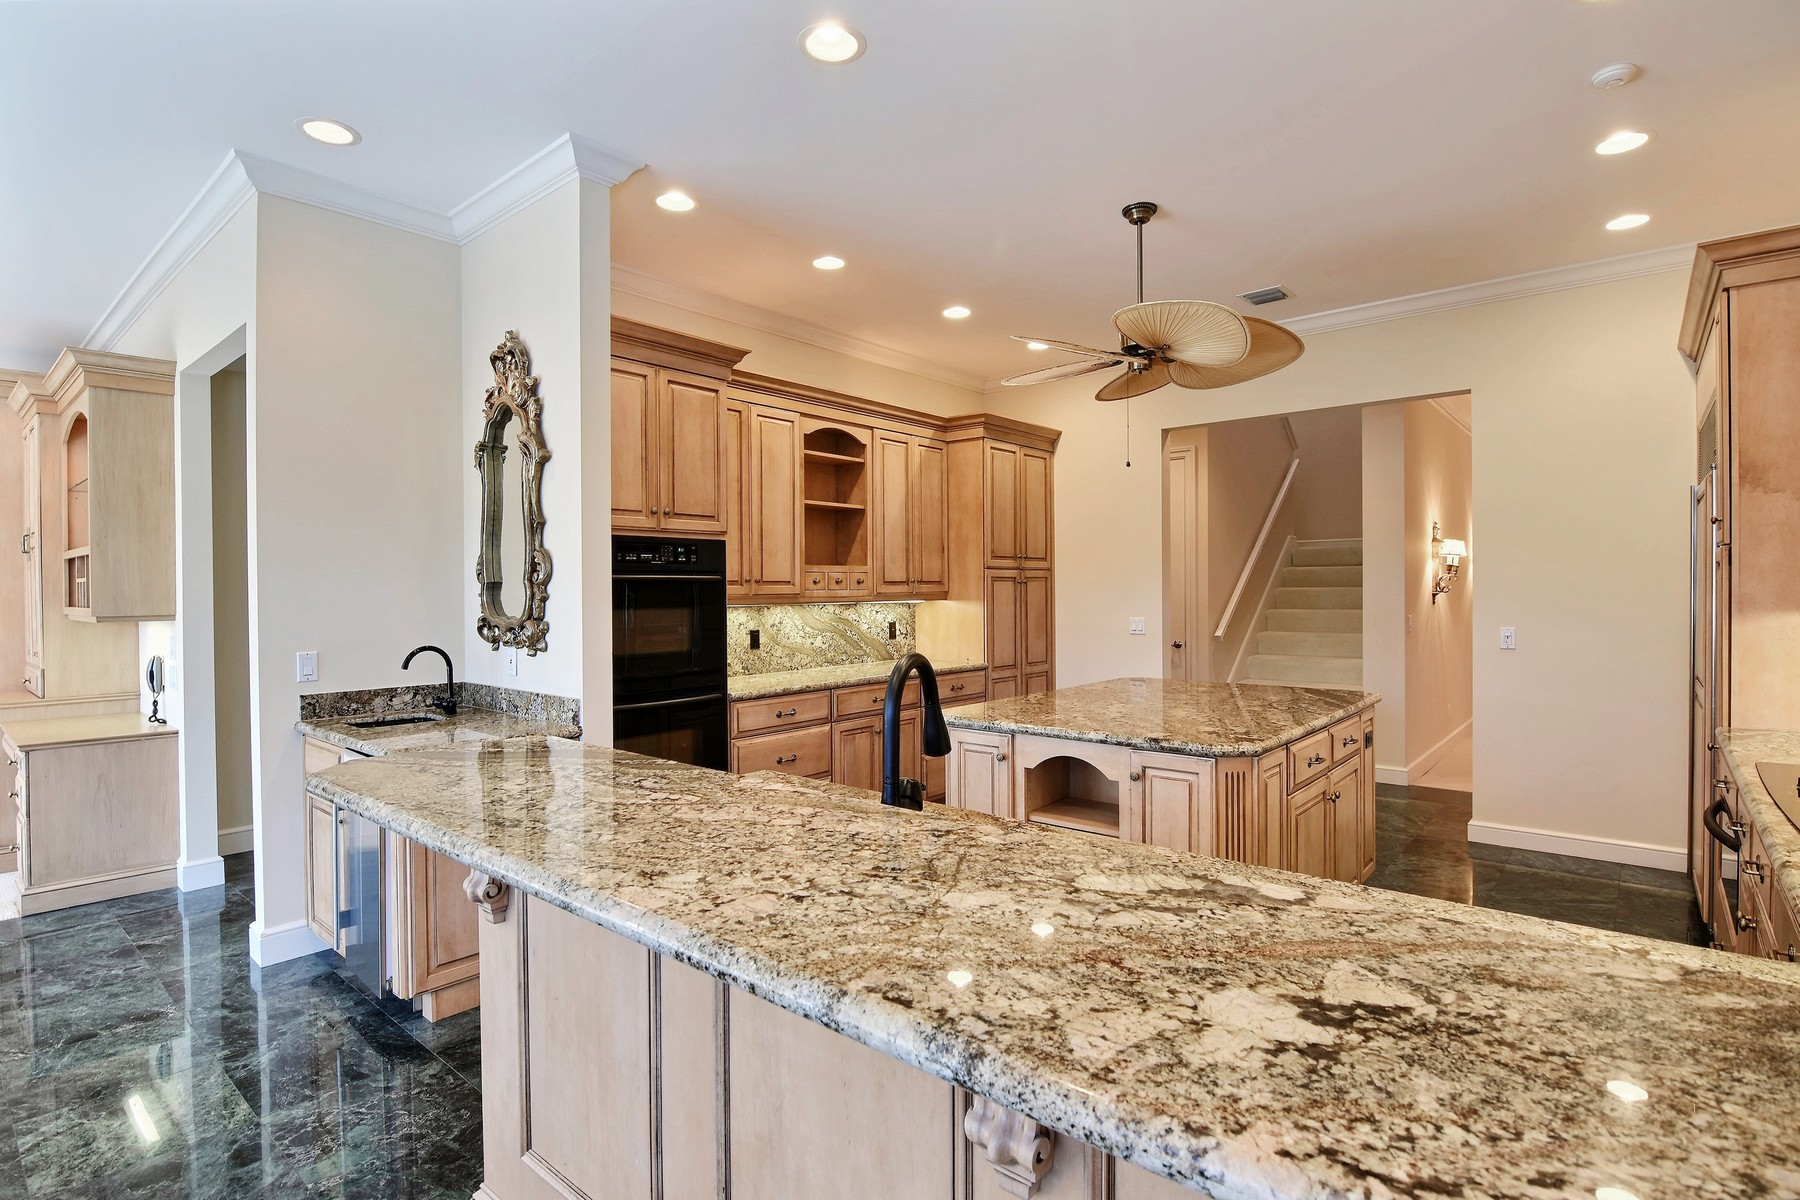 Additional photo for property listing at Riverfront, Pool, Gourmet Kitchen, Three Car Garage 730 Lagoon Rd Vero Beach, Florida 32963 United States